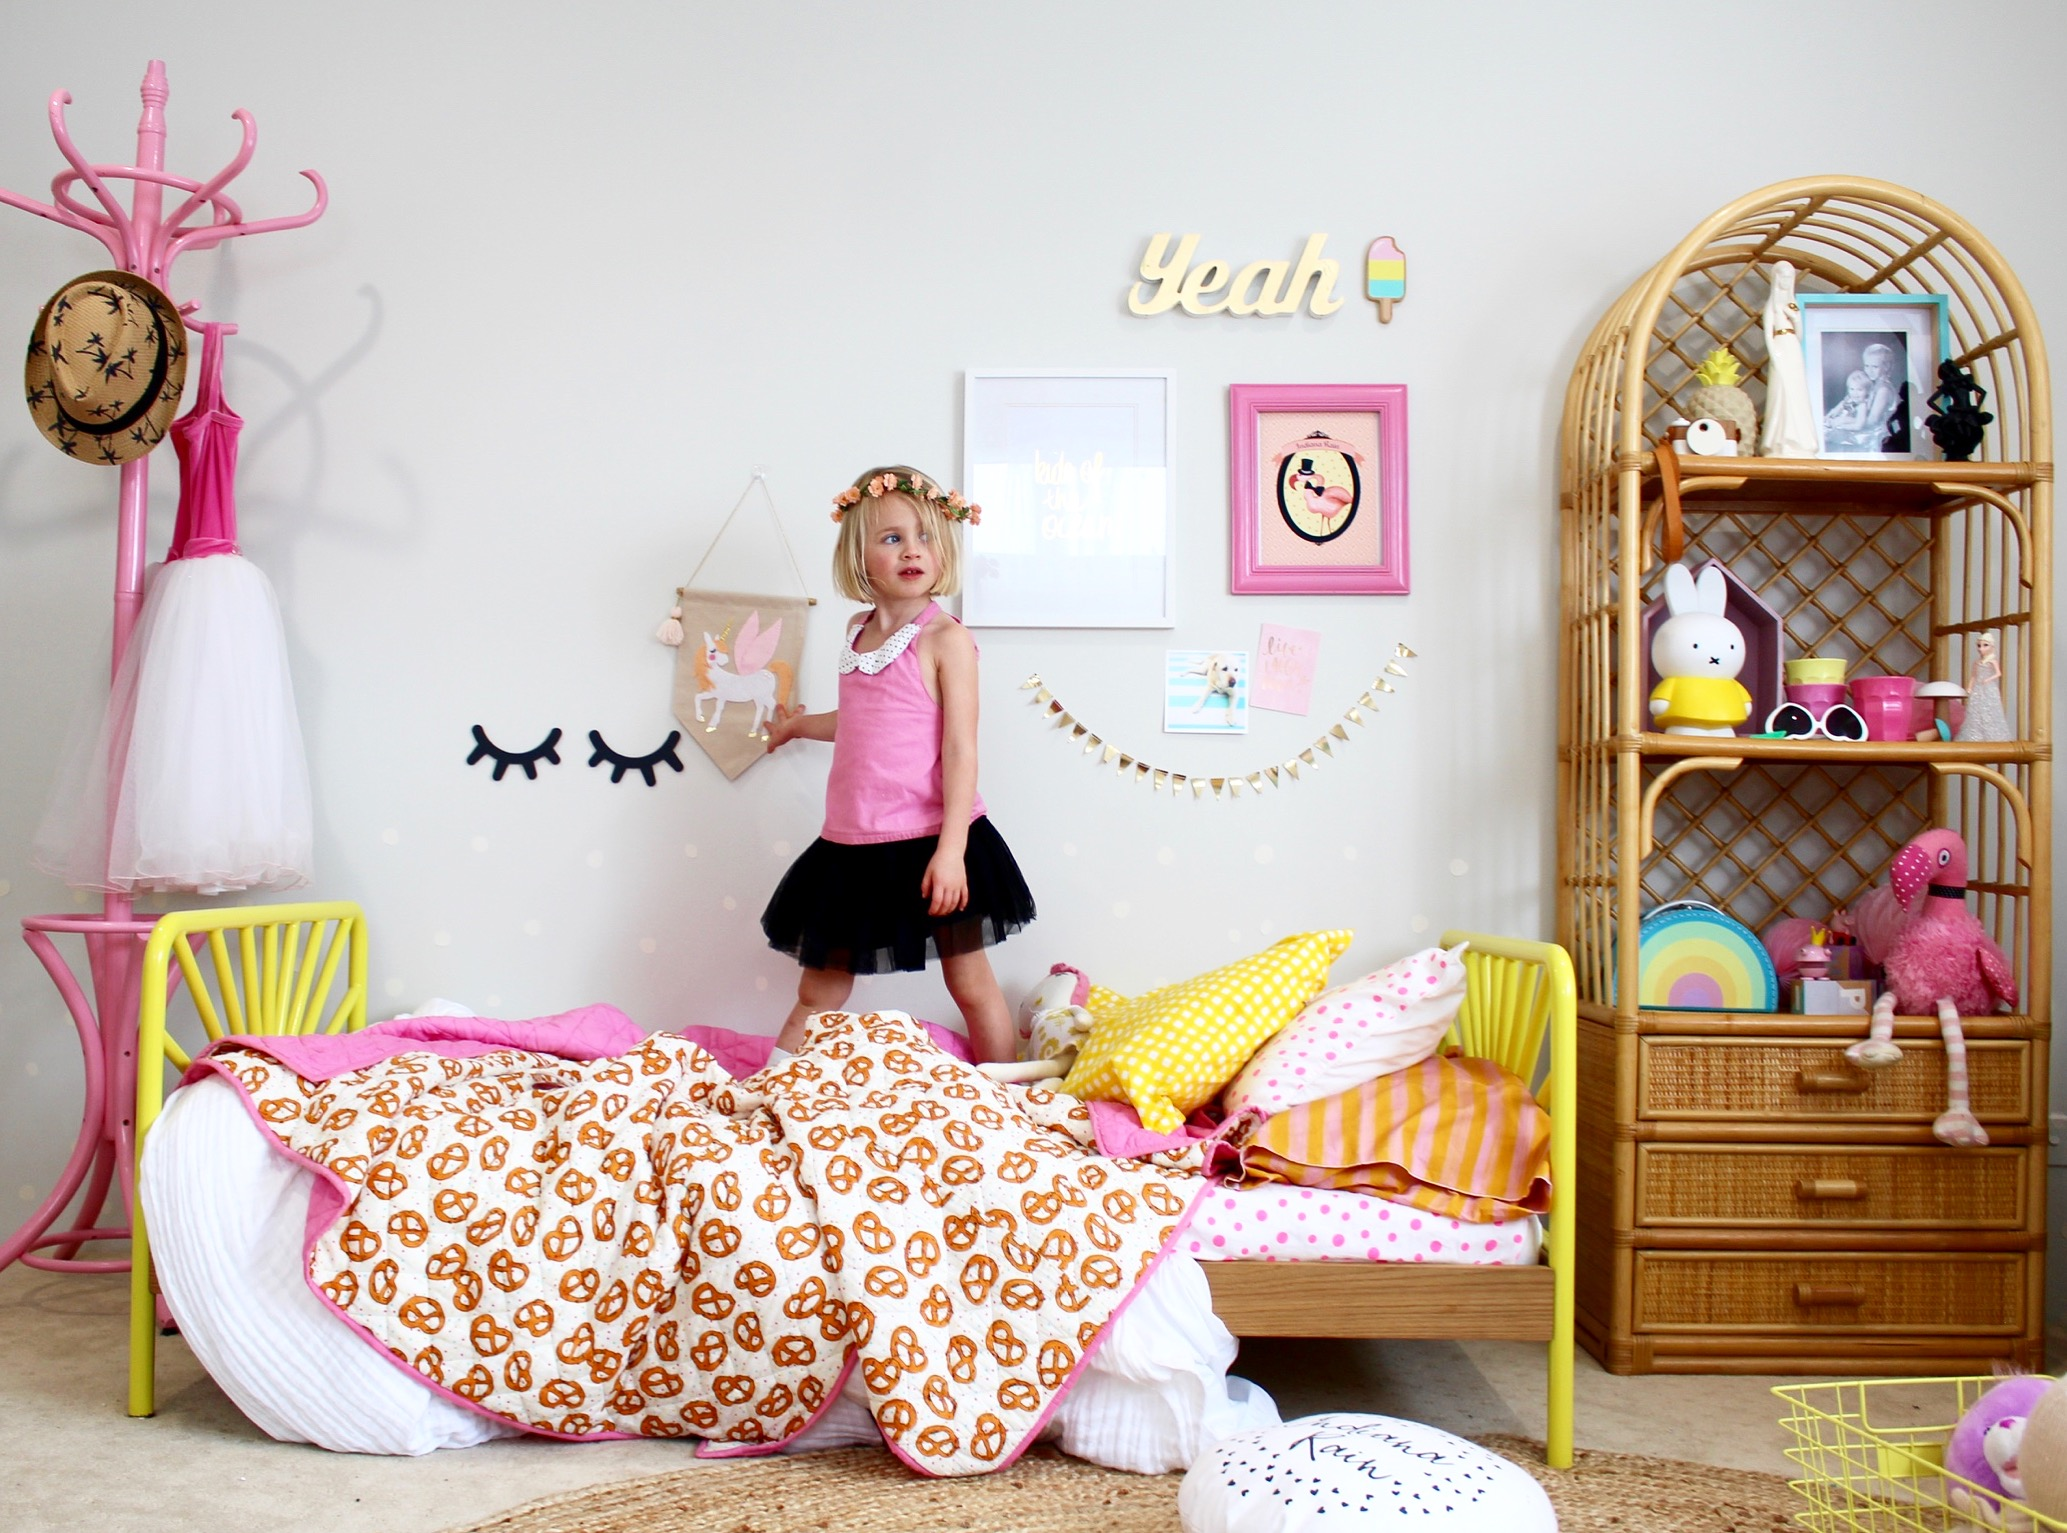 cool bedding for kids bedrooms // more kip and co goodness on the blog!